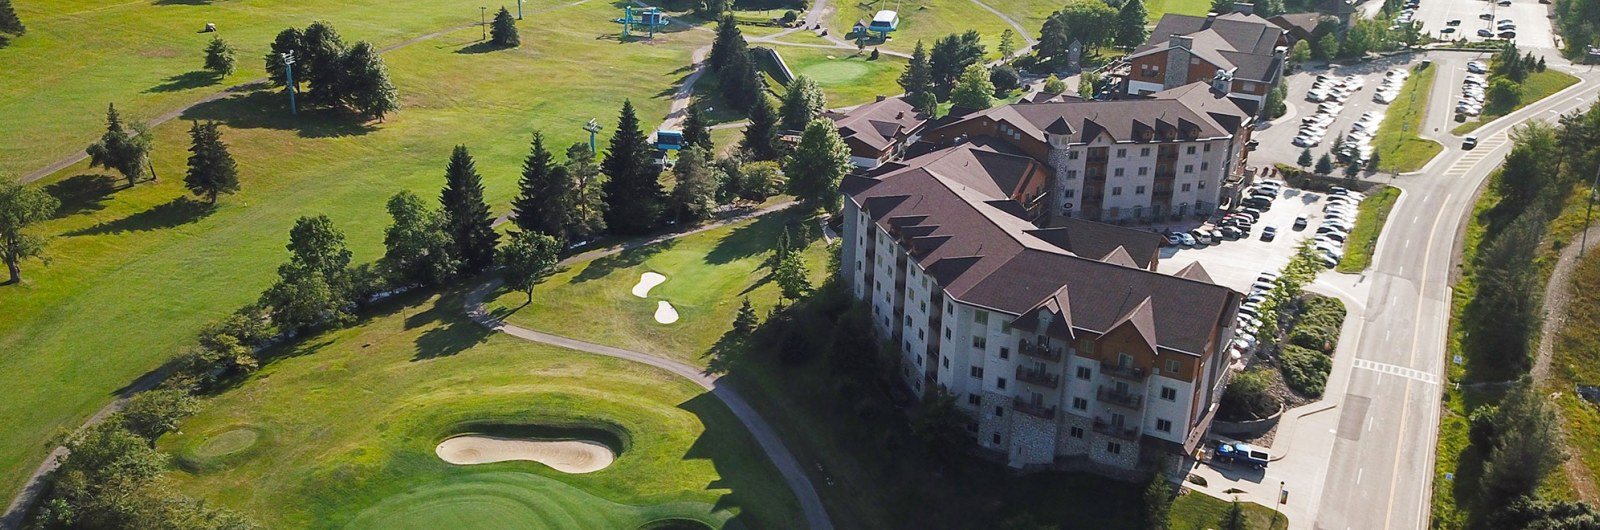 Aerial view of golf course and lodge at Holiday Valley on a Summer day